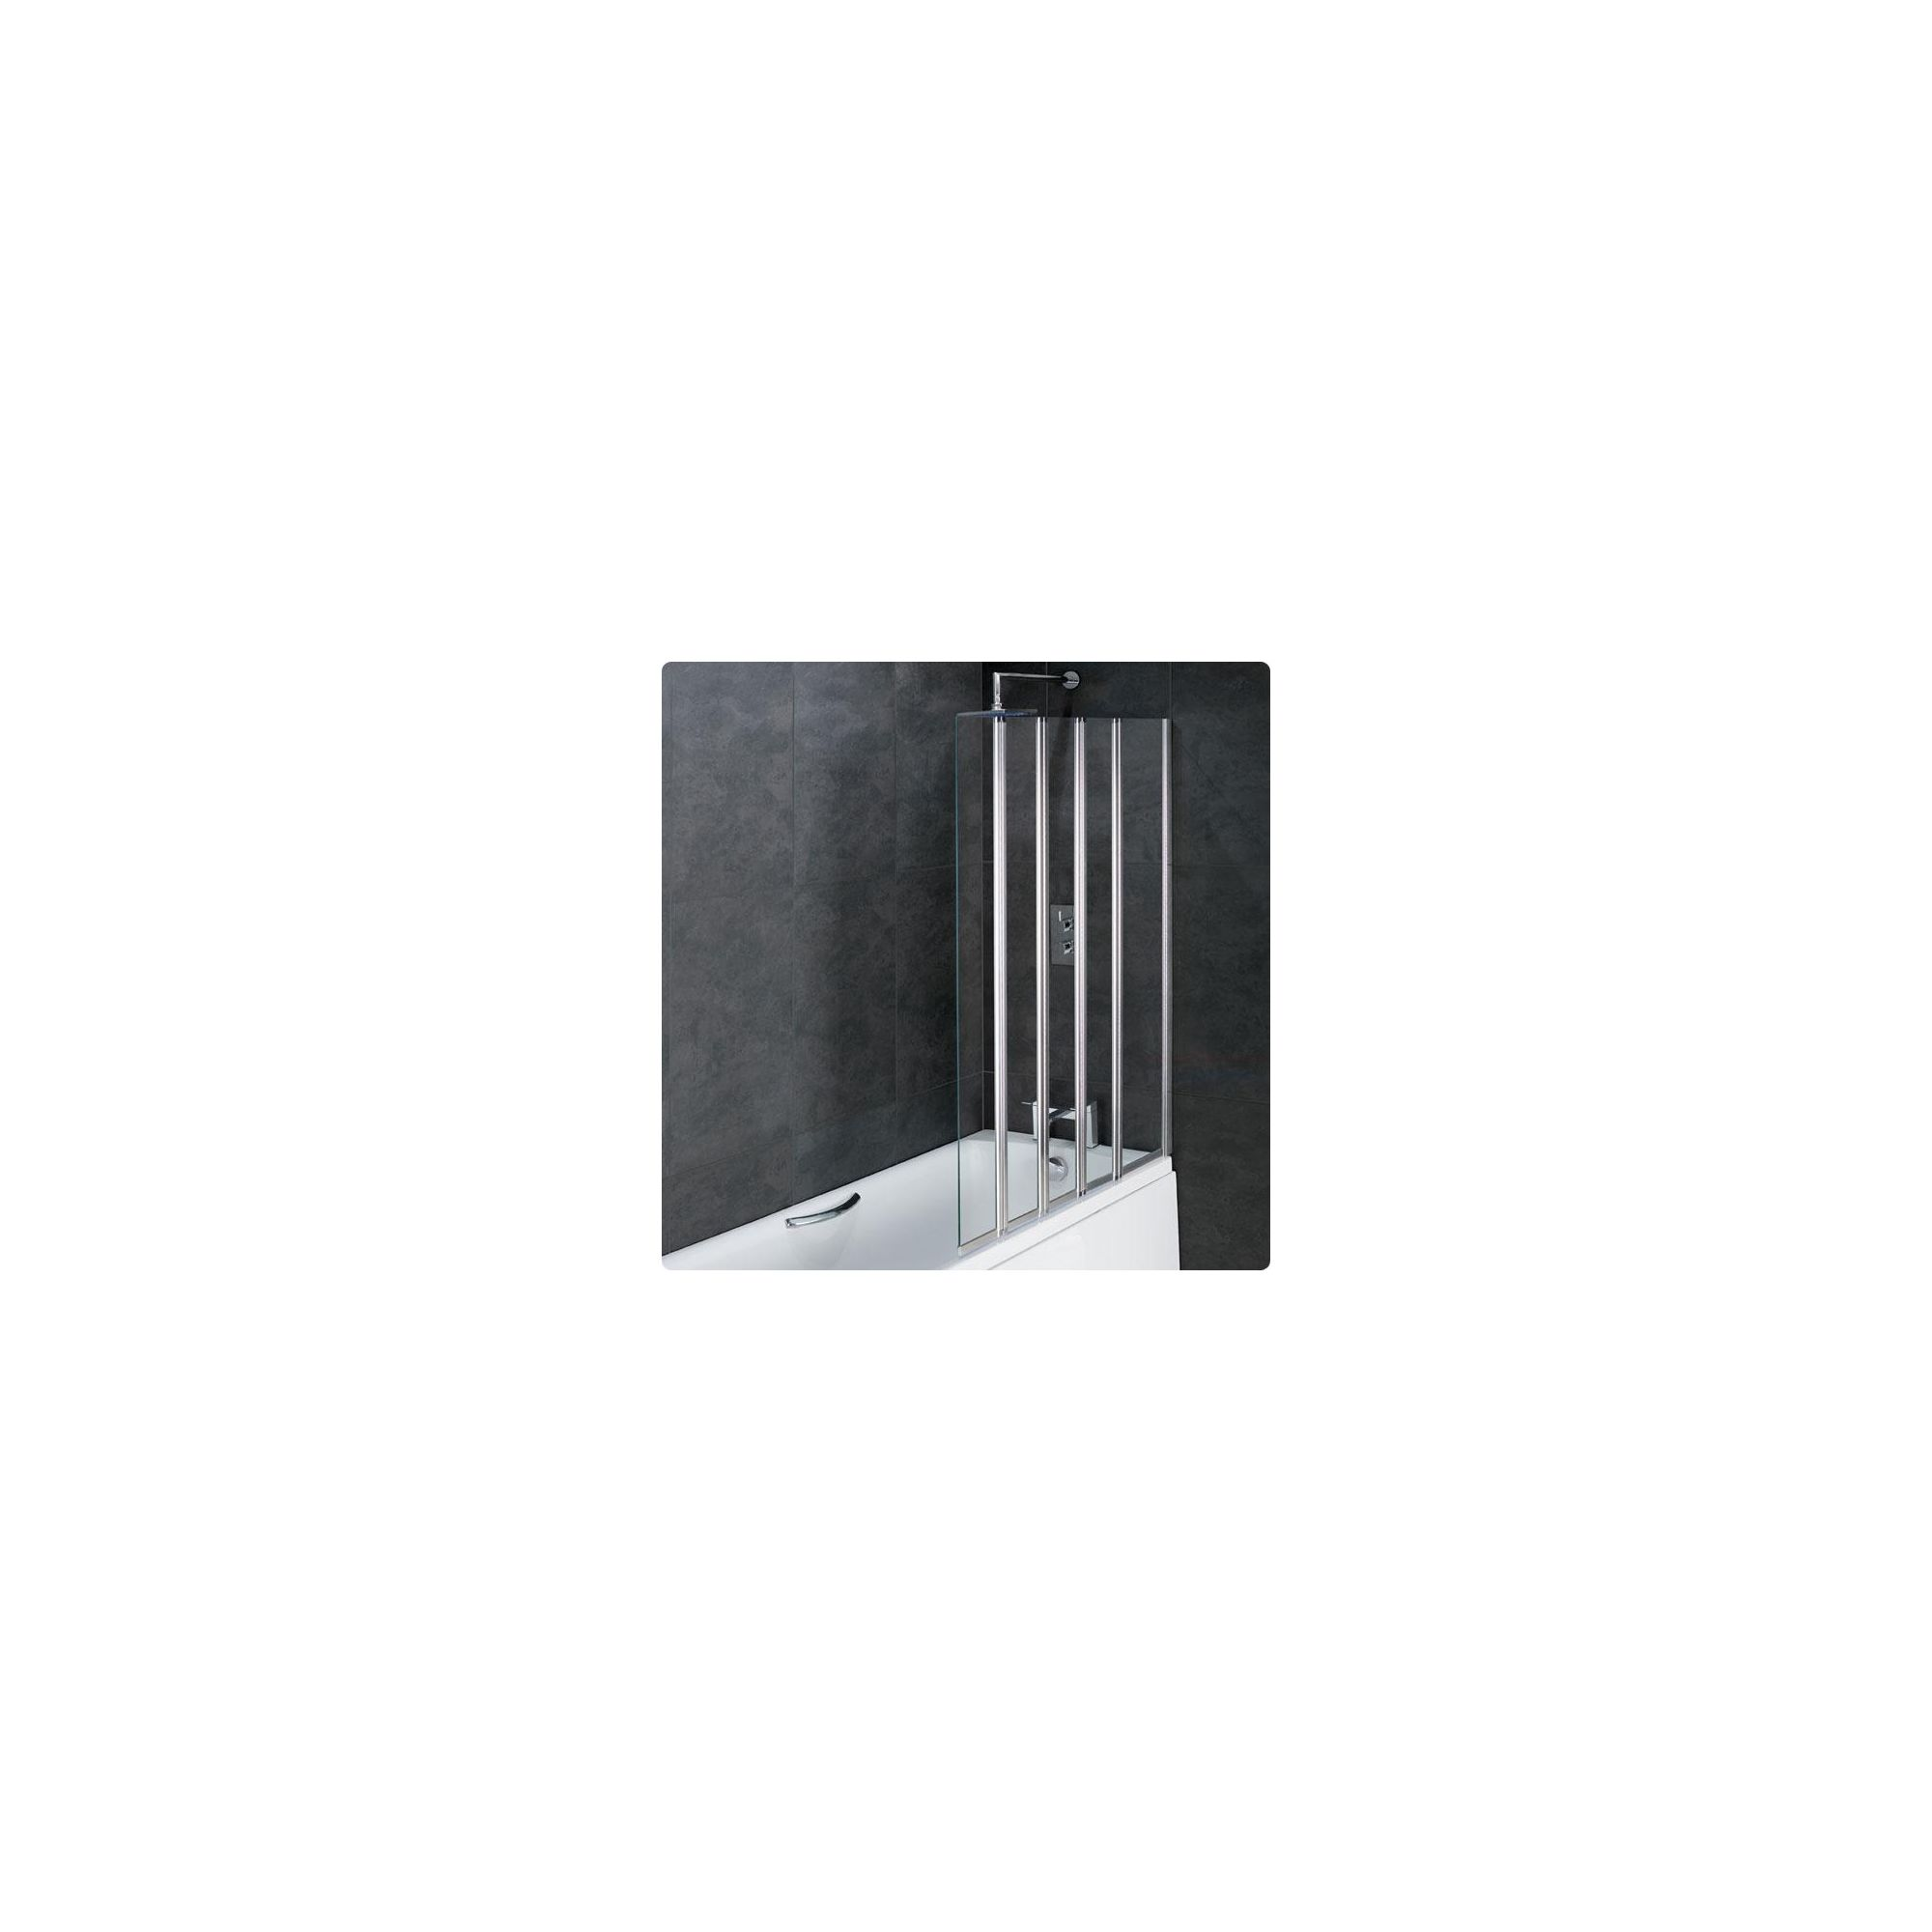 Duchy ROSETTA Folding Bath Screen 1 Fixed Panel with 4 Folding Panels RIGHT HANDED with Silver Profile (1250mm Wide x 1400mm High) at Tesco Direct